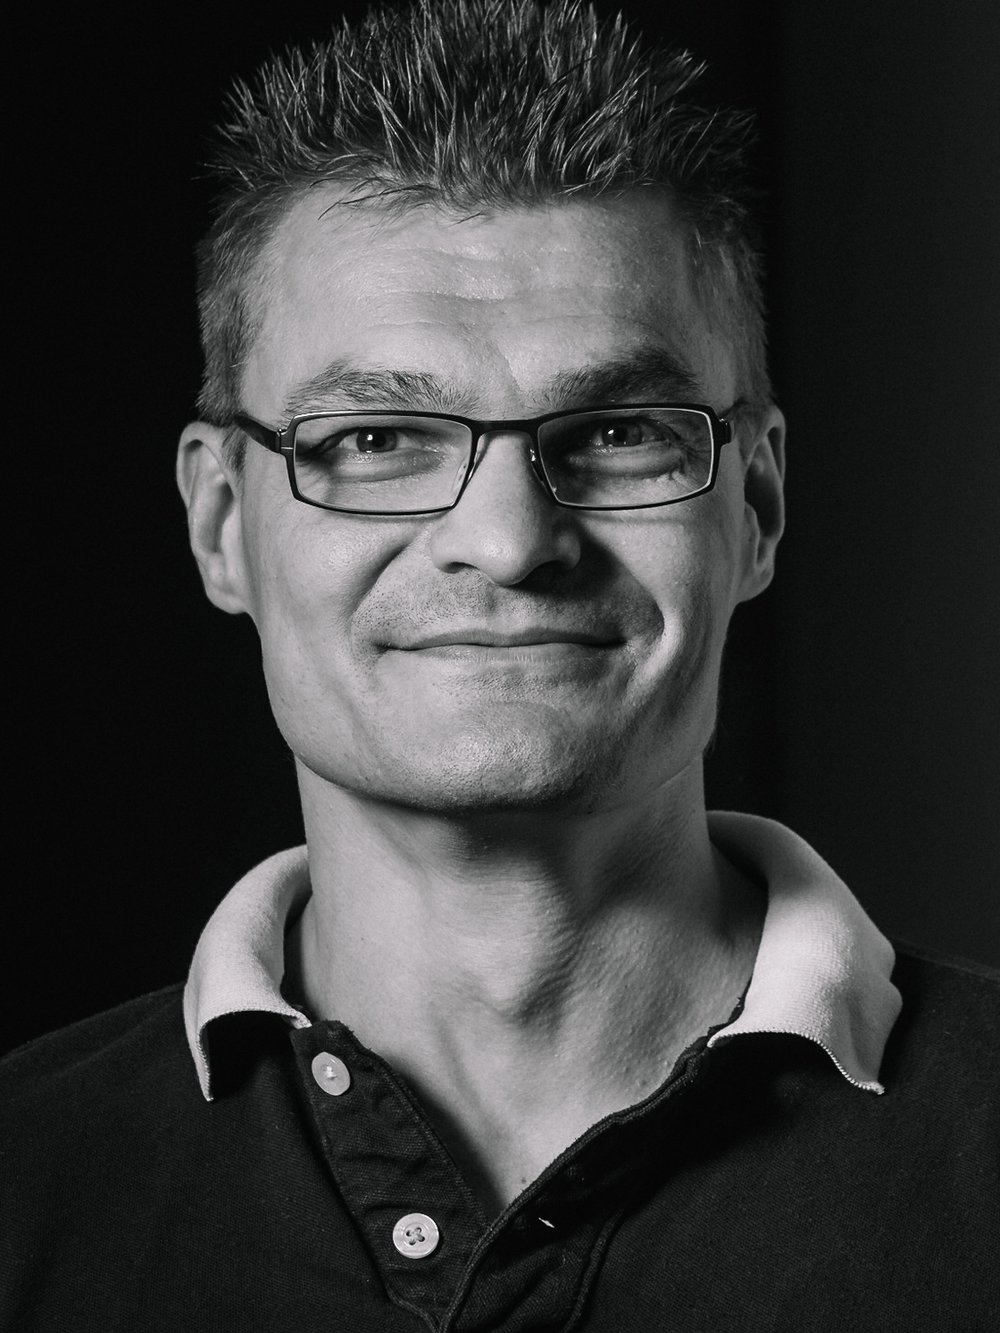 Klaus Melakari Founder/Tech. Development director. 20 years experience in R&D, system design and technology. Previously Head of Computational Vision Systems at Microsoft Mobile, Distinguished architect at Nokia. M.Sc in Electrical and Electronics Engineering.